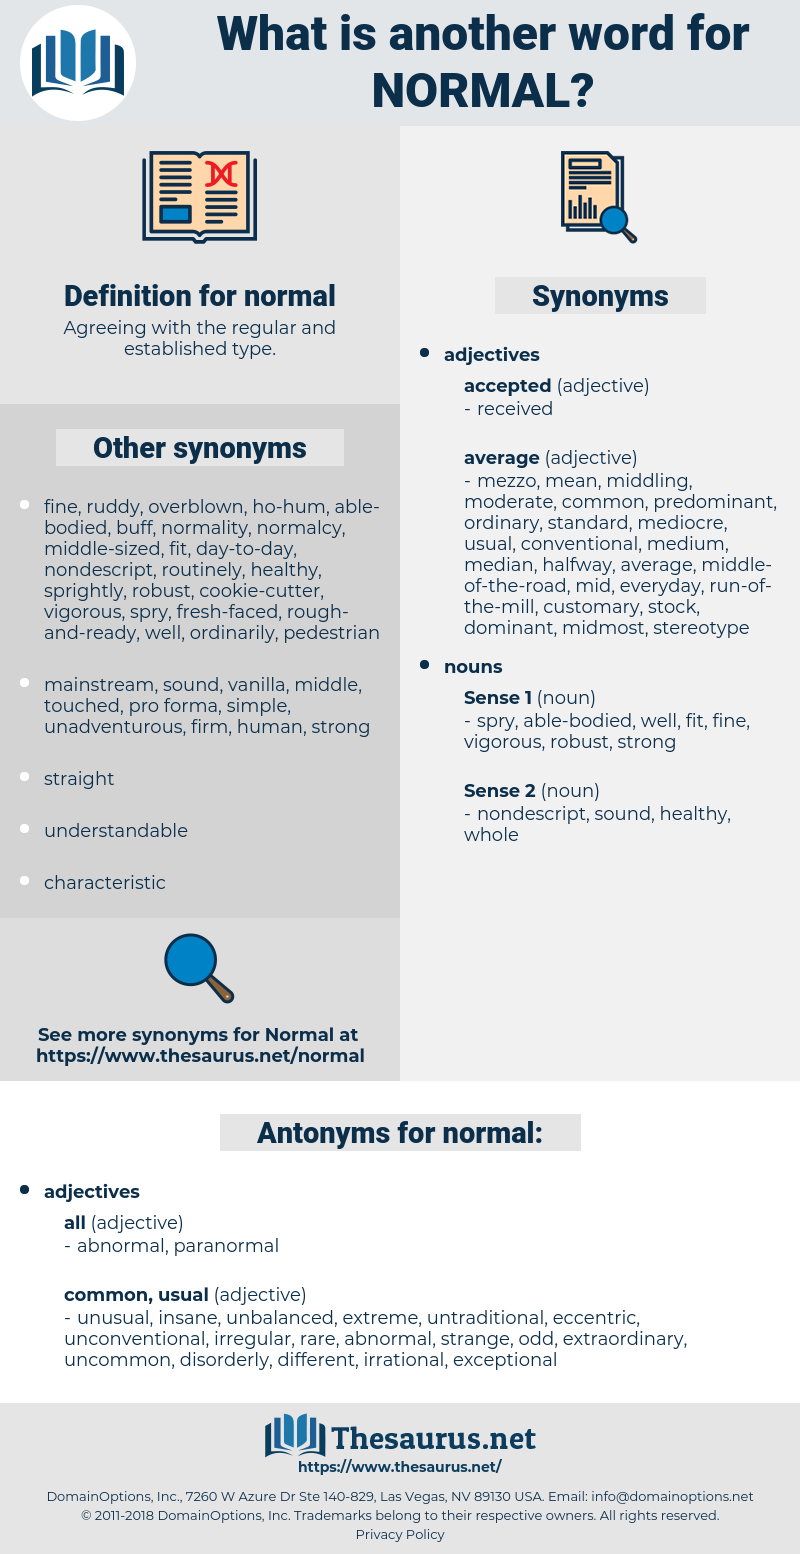 normal, synonym normal, another word for normal, words like normal, thesaurus normal